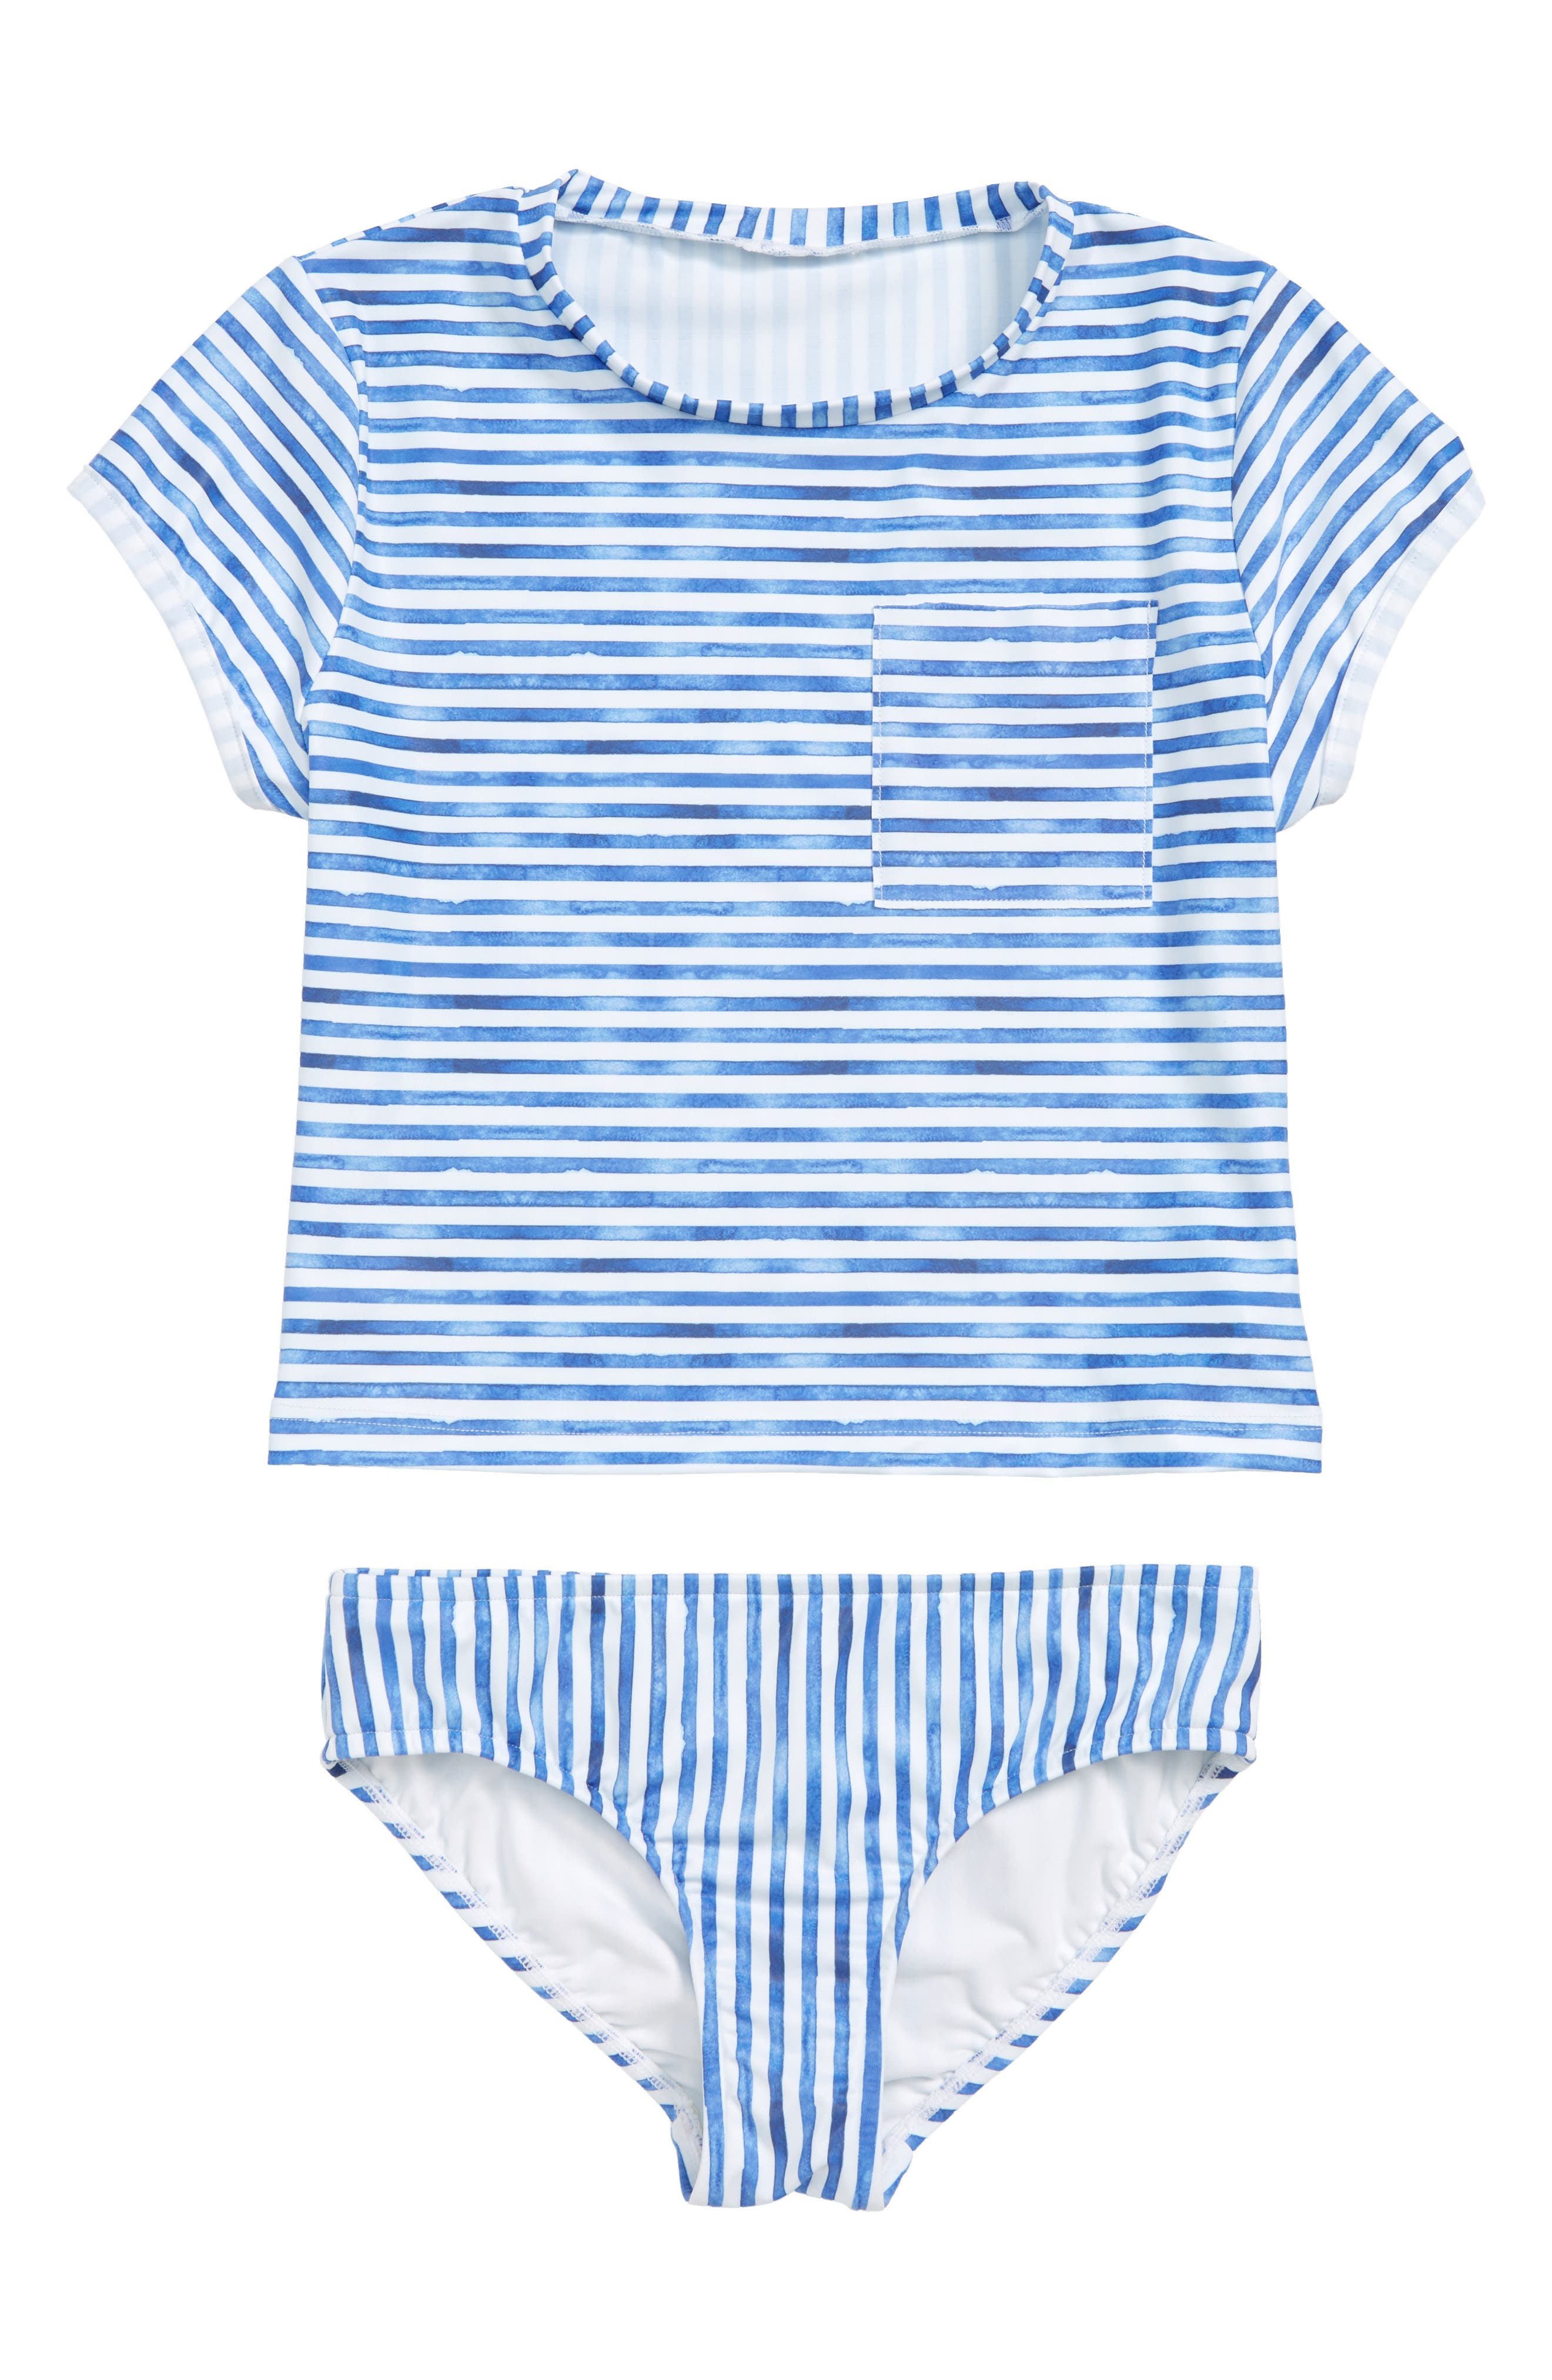 Tropical Vibes Stripe Two-Piece Swimsuit,                             Main thumbnail 1, color,                             WHITE/ BLUE